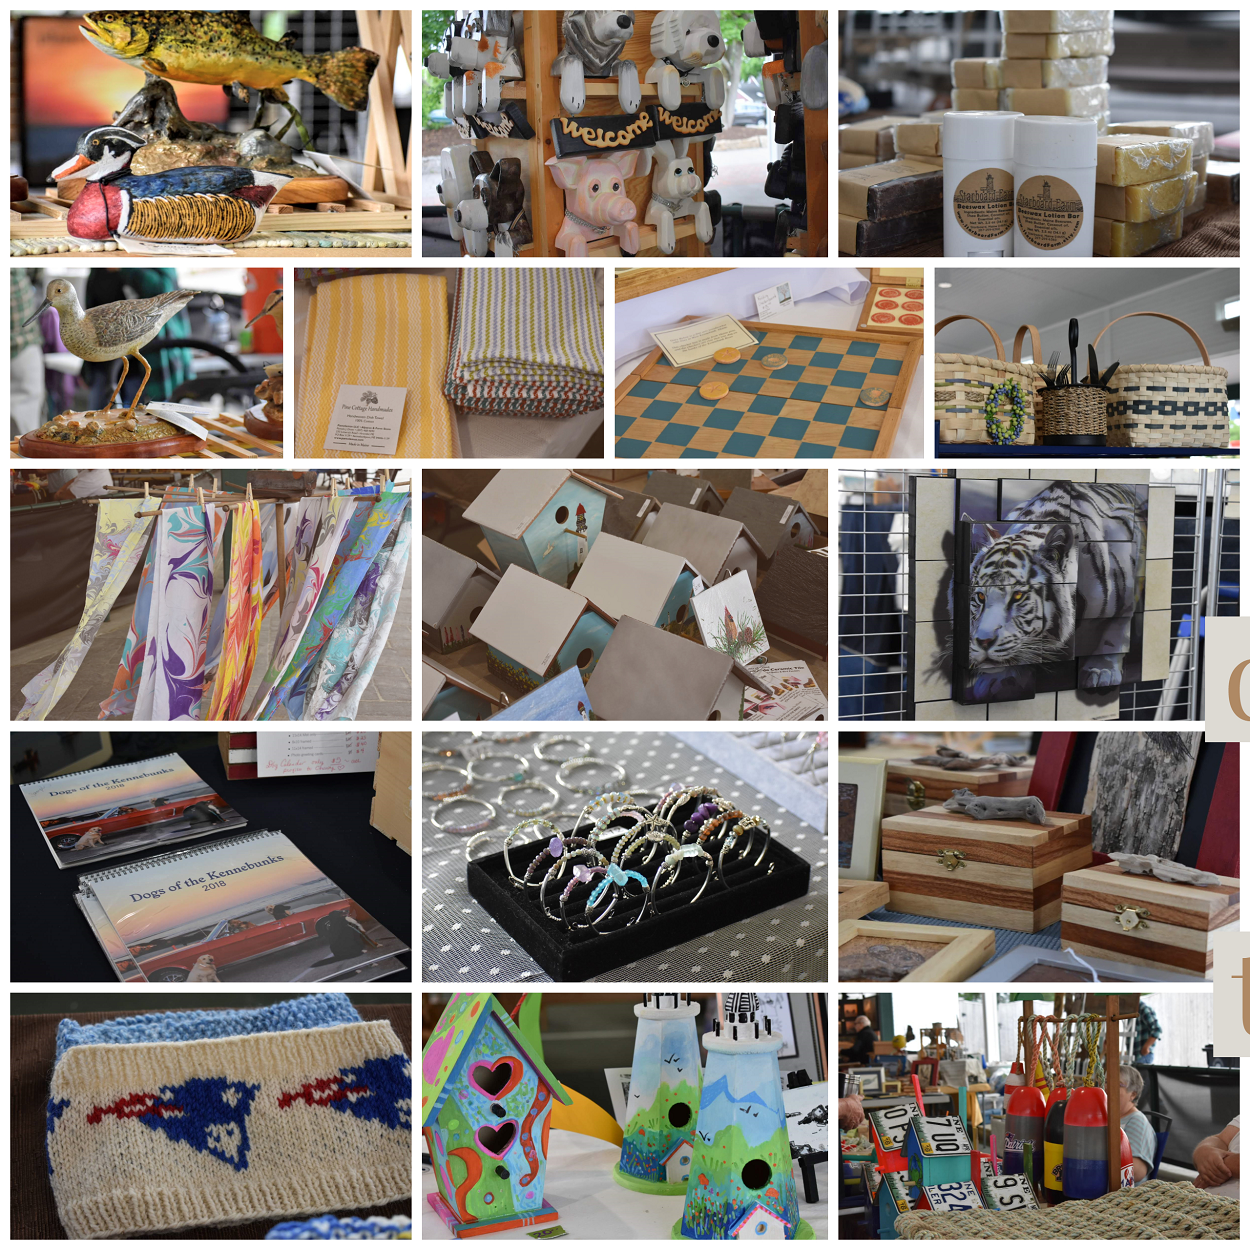 Collage of products at market